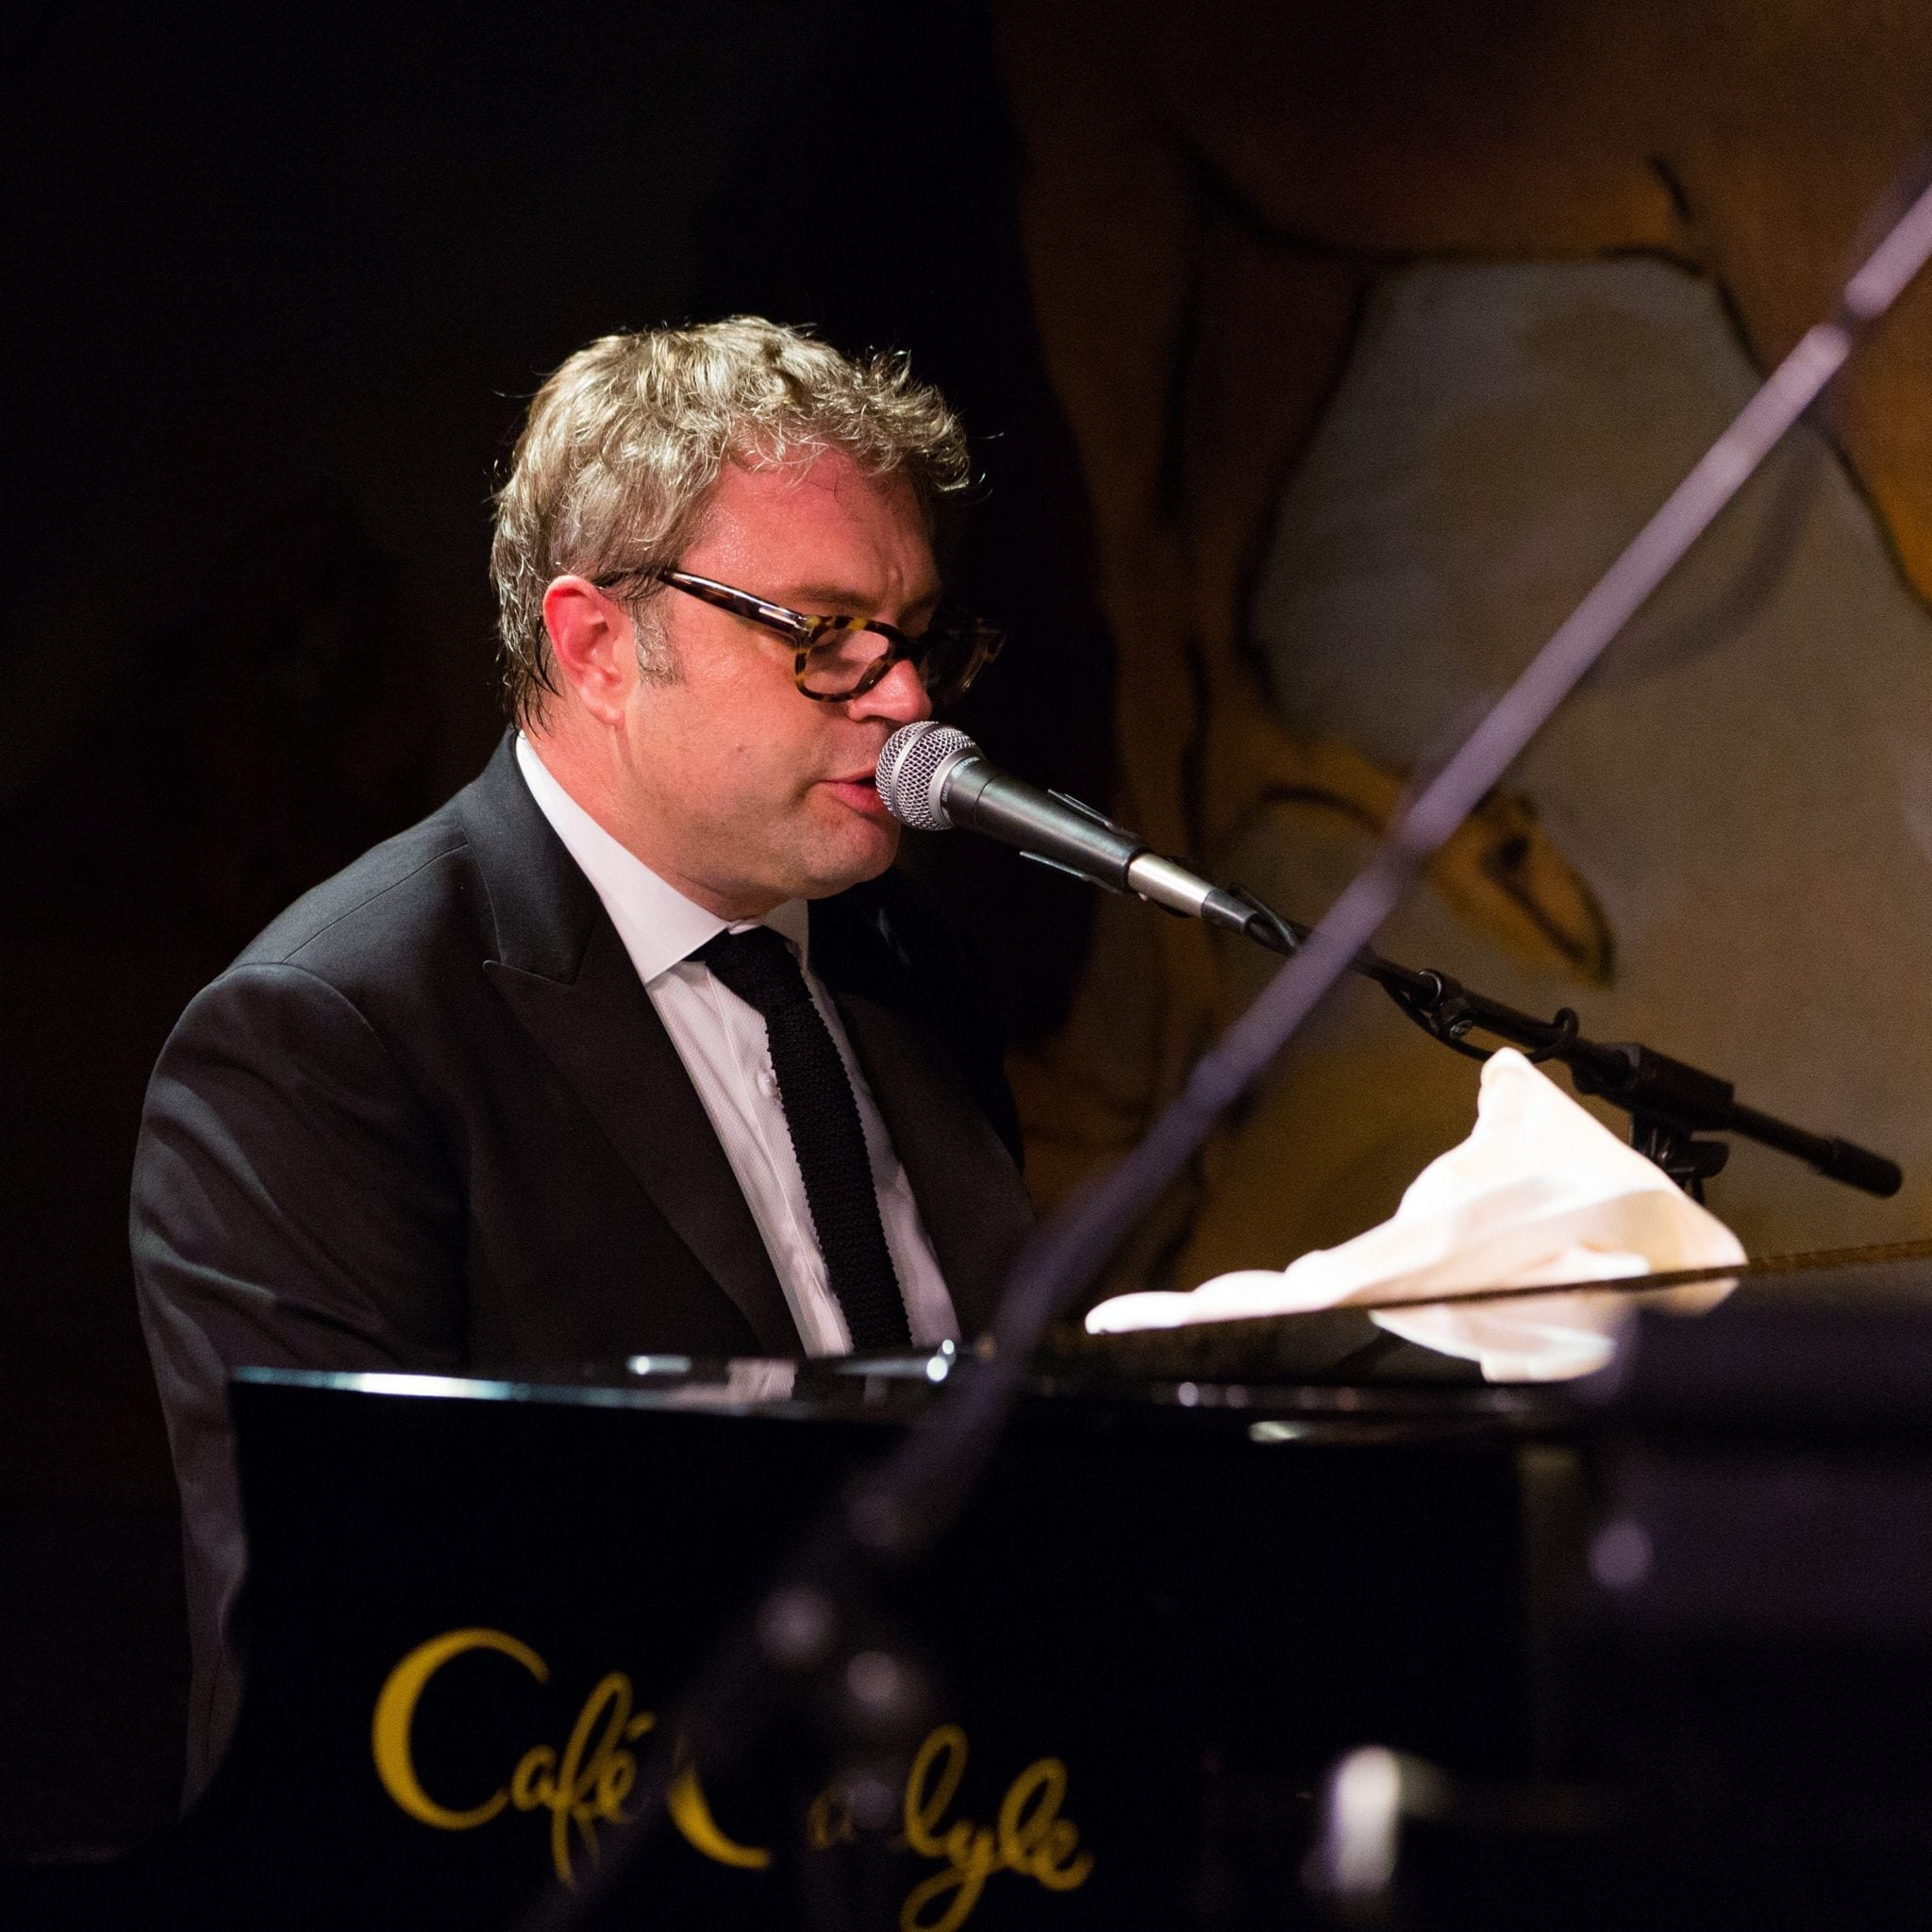 Steven Page at the Cafe Carlyle